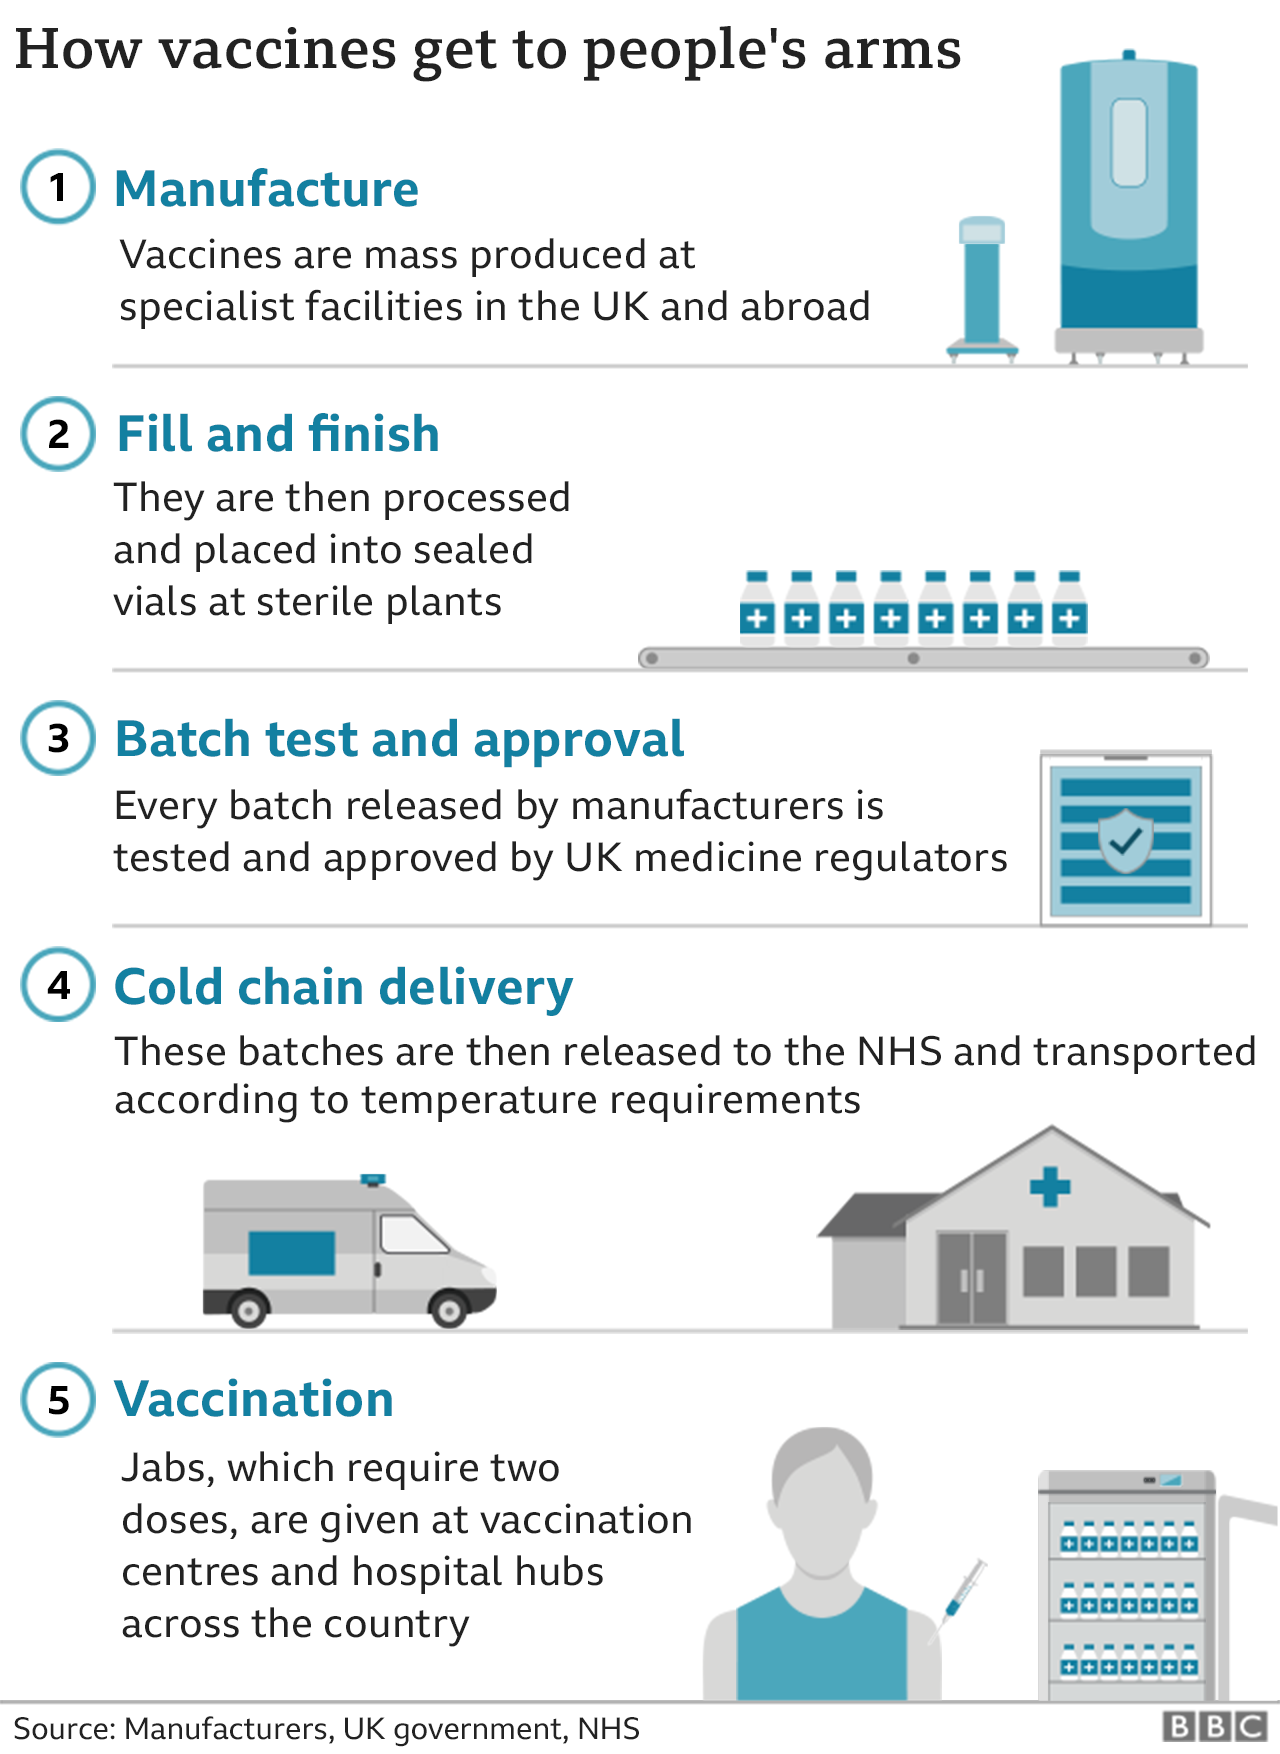 Infographic showing the UK vaccine supply chain: 1. Manufacture 2. Fill and finish 3. Batch test and approval 4. Cold chain delivery